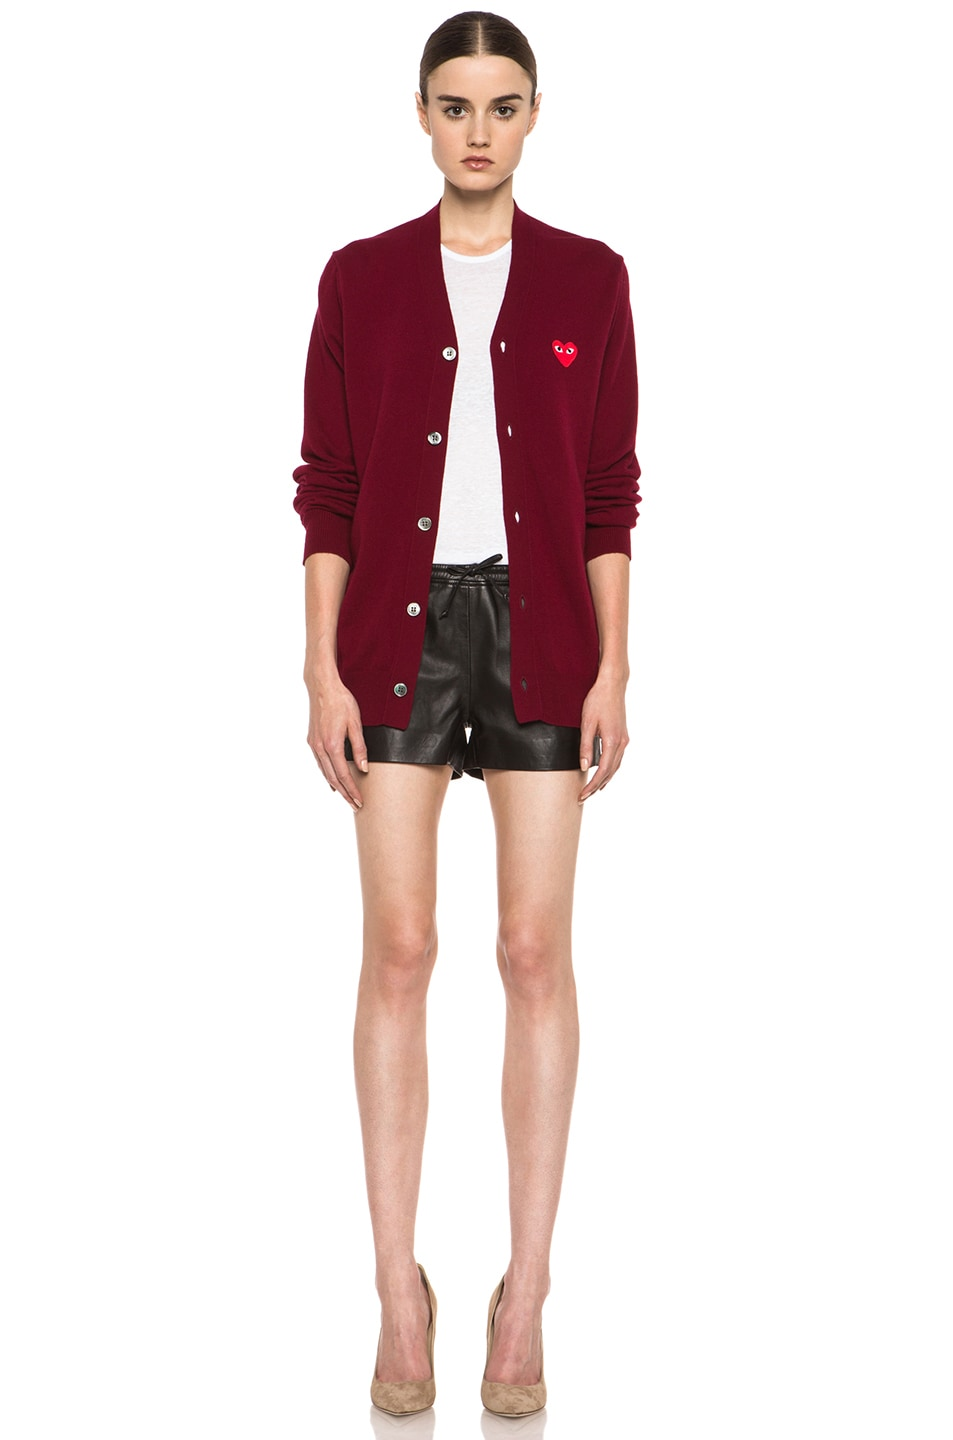 Image 6 of Comme Des Garcons PLAY Wool Cardigan with Red Emblem in Burgundy